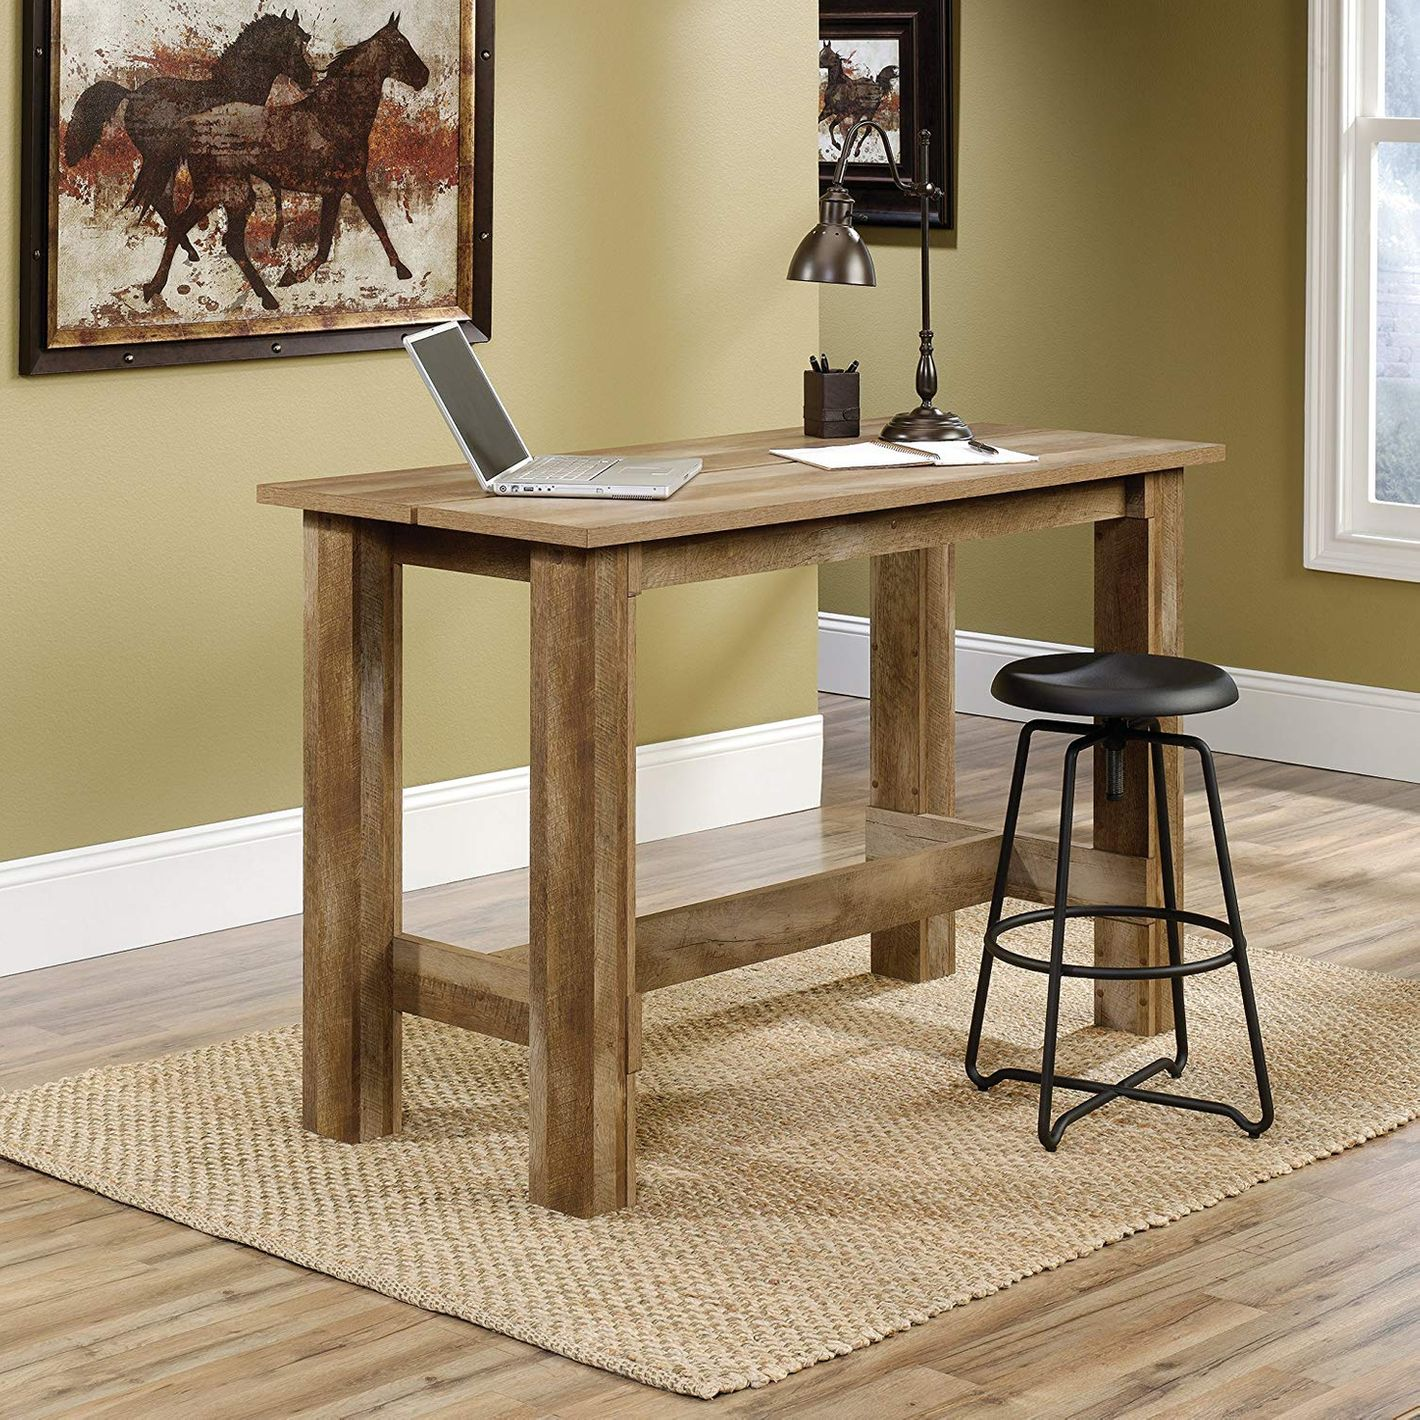 Sauder Counter Height Dining Table, Craftsman Oak